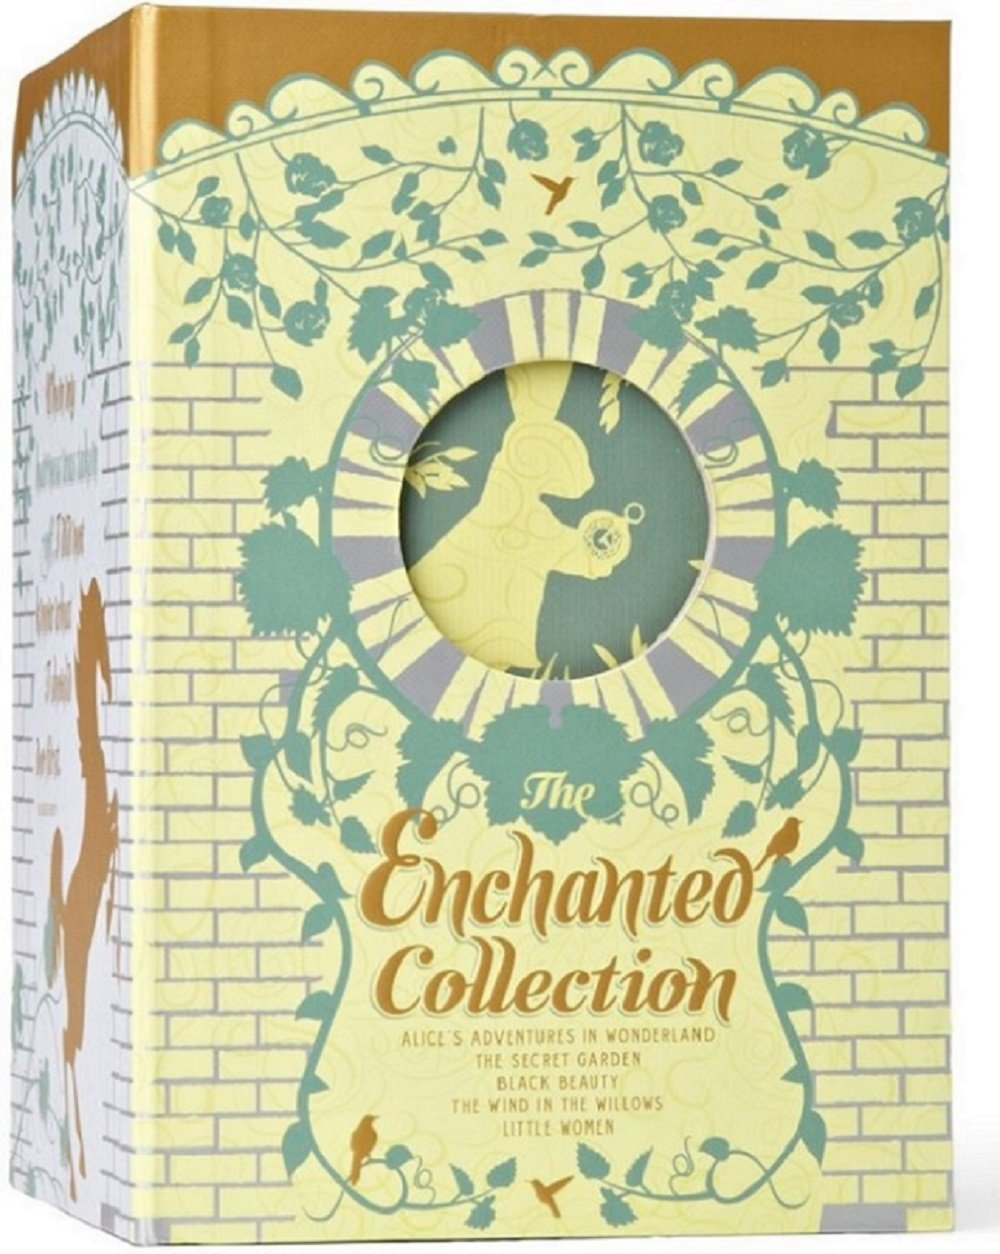 The Enchanted Collection: Alice's Adventures in Wonderland, The Secret Garden, Black Beauty, The Wind in the Willows, Little Women (The Heirloom Collection) by Two Lions